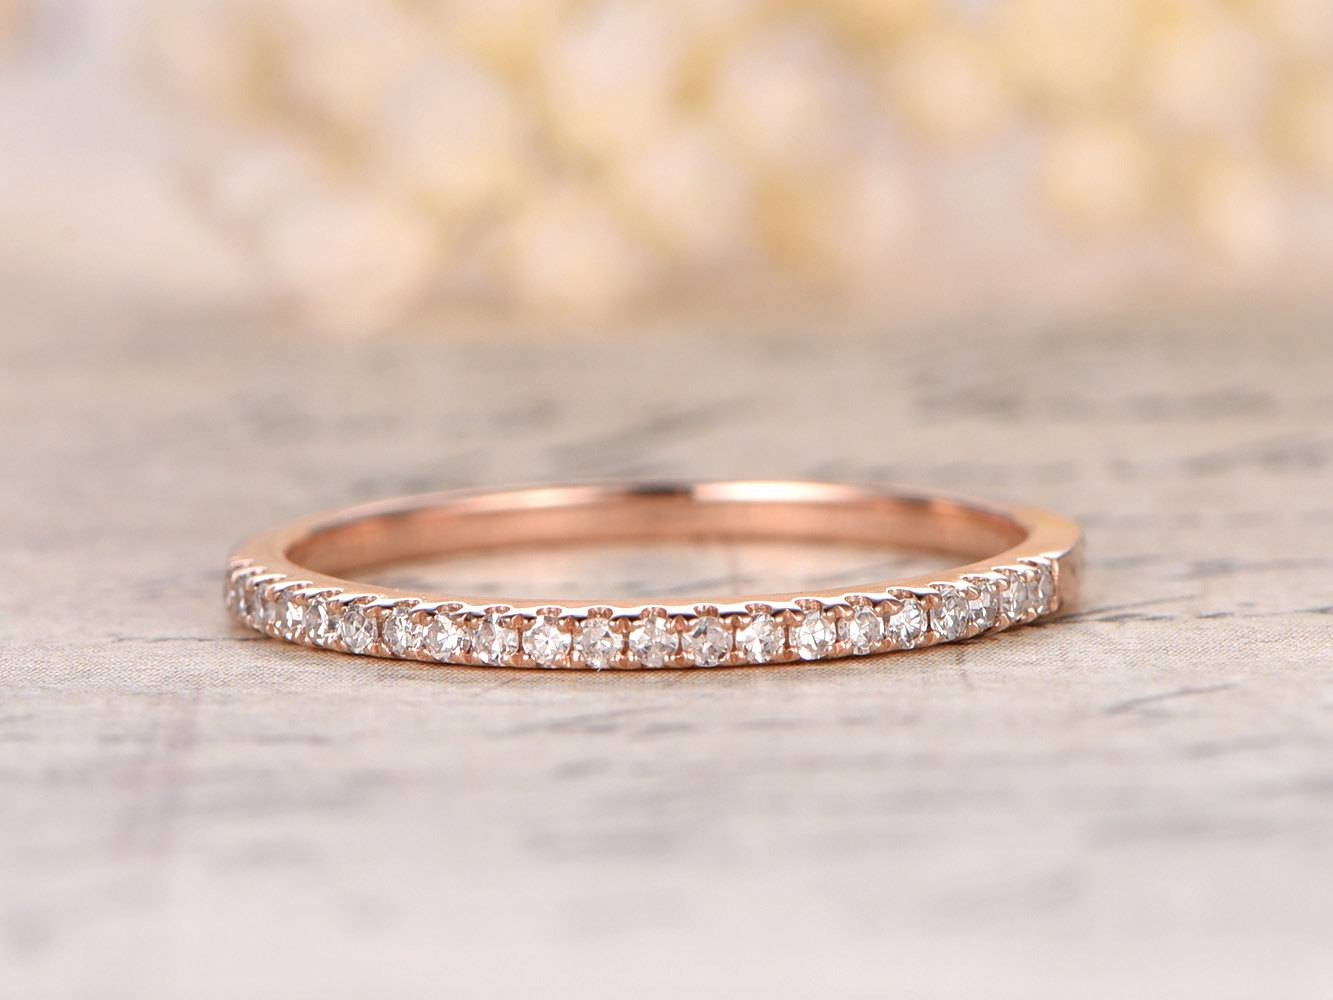 Valentine's Day Present 14K Rose Gold Wedding Band Half Pertaining To Rose Gold Diamond Wedding Bands (Gallery 9 of 15)